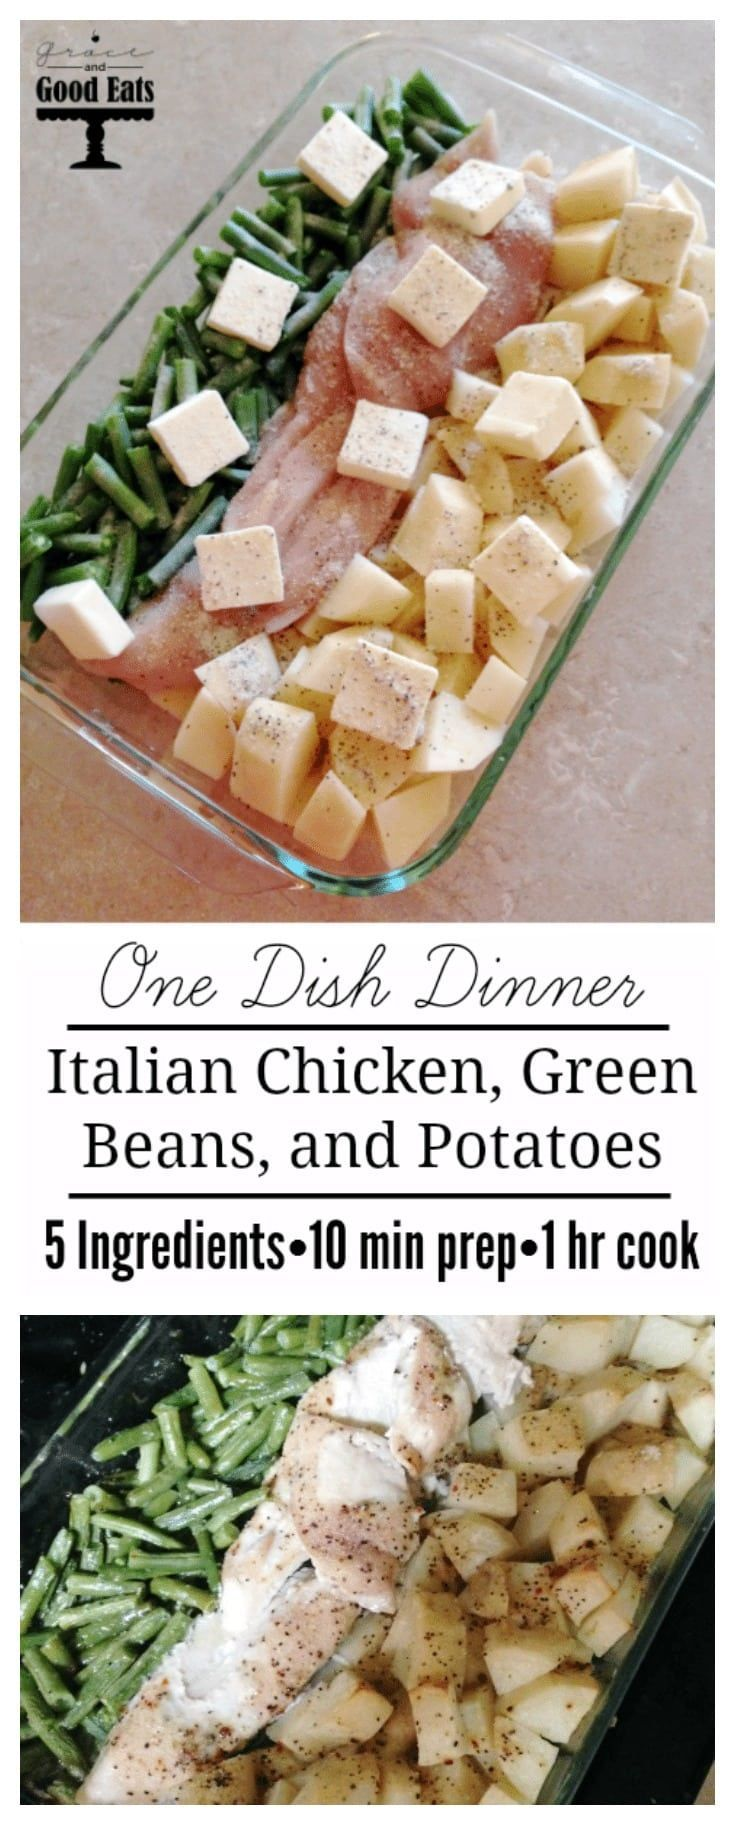 Italian supper with chicken, green beans and potatoes